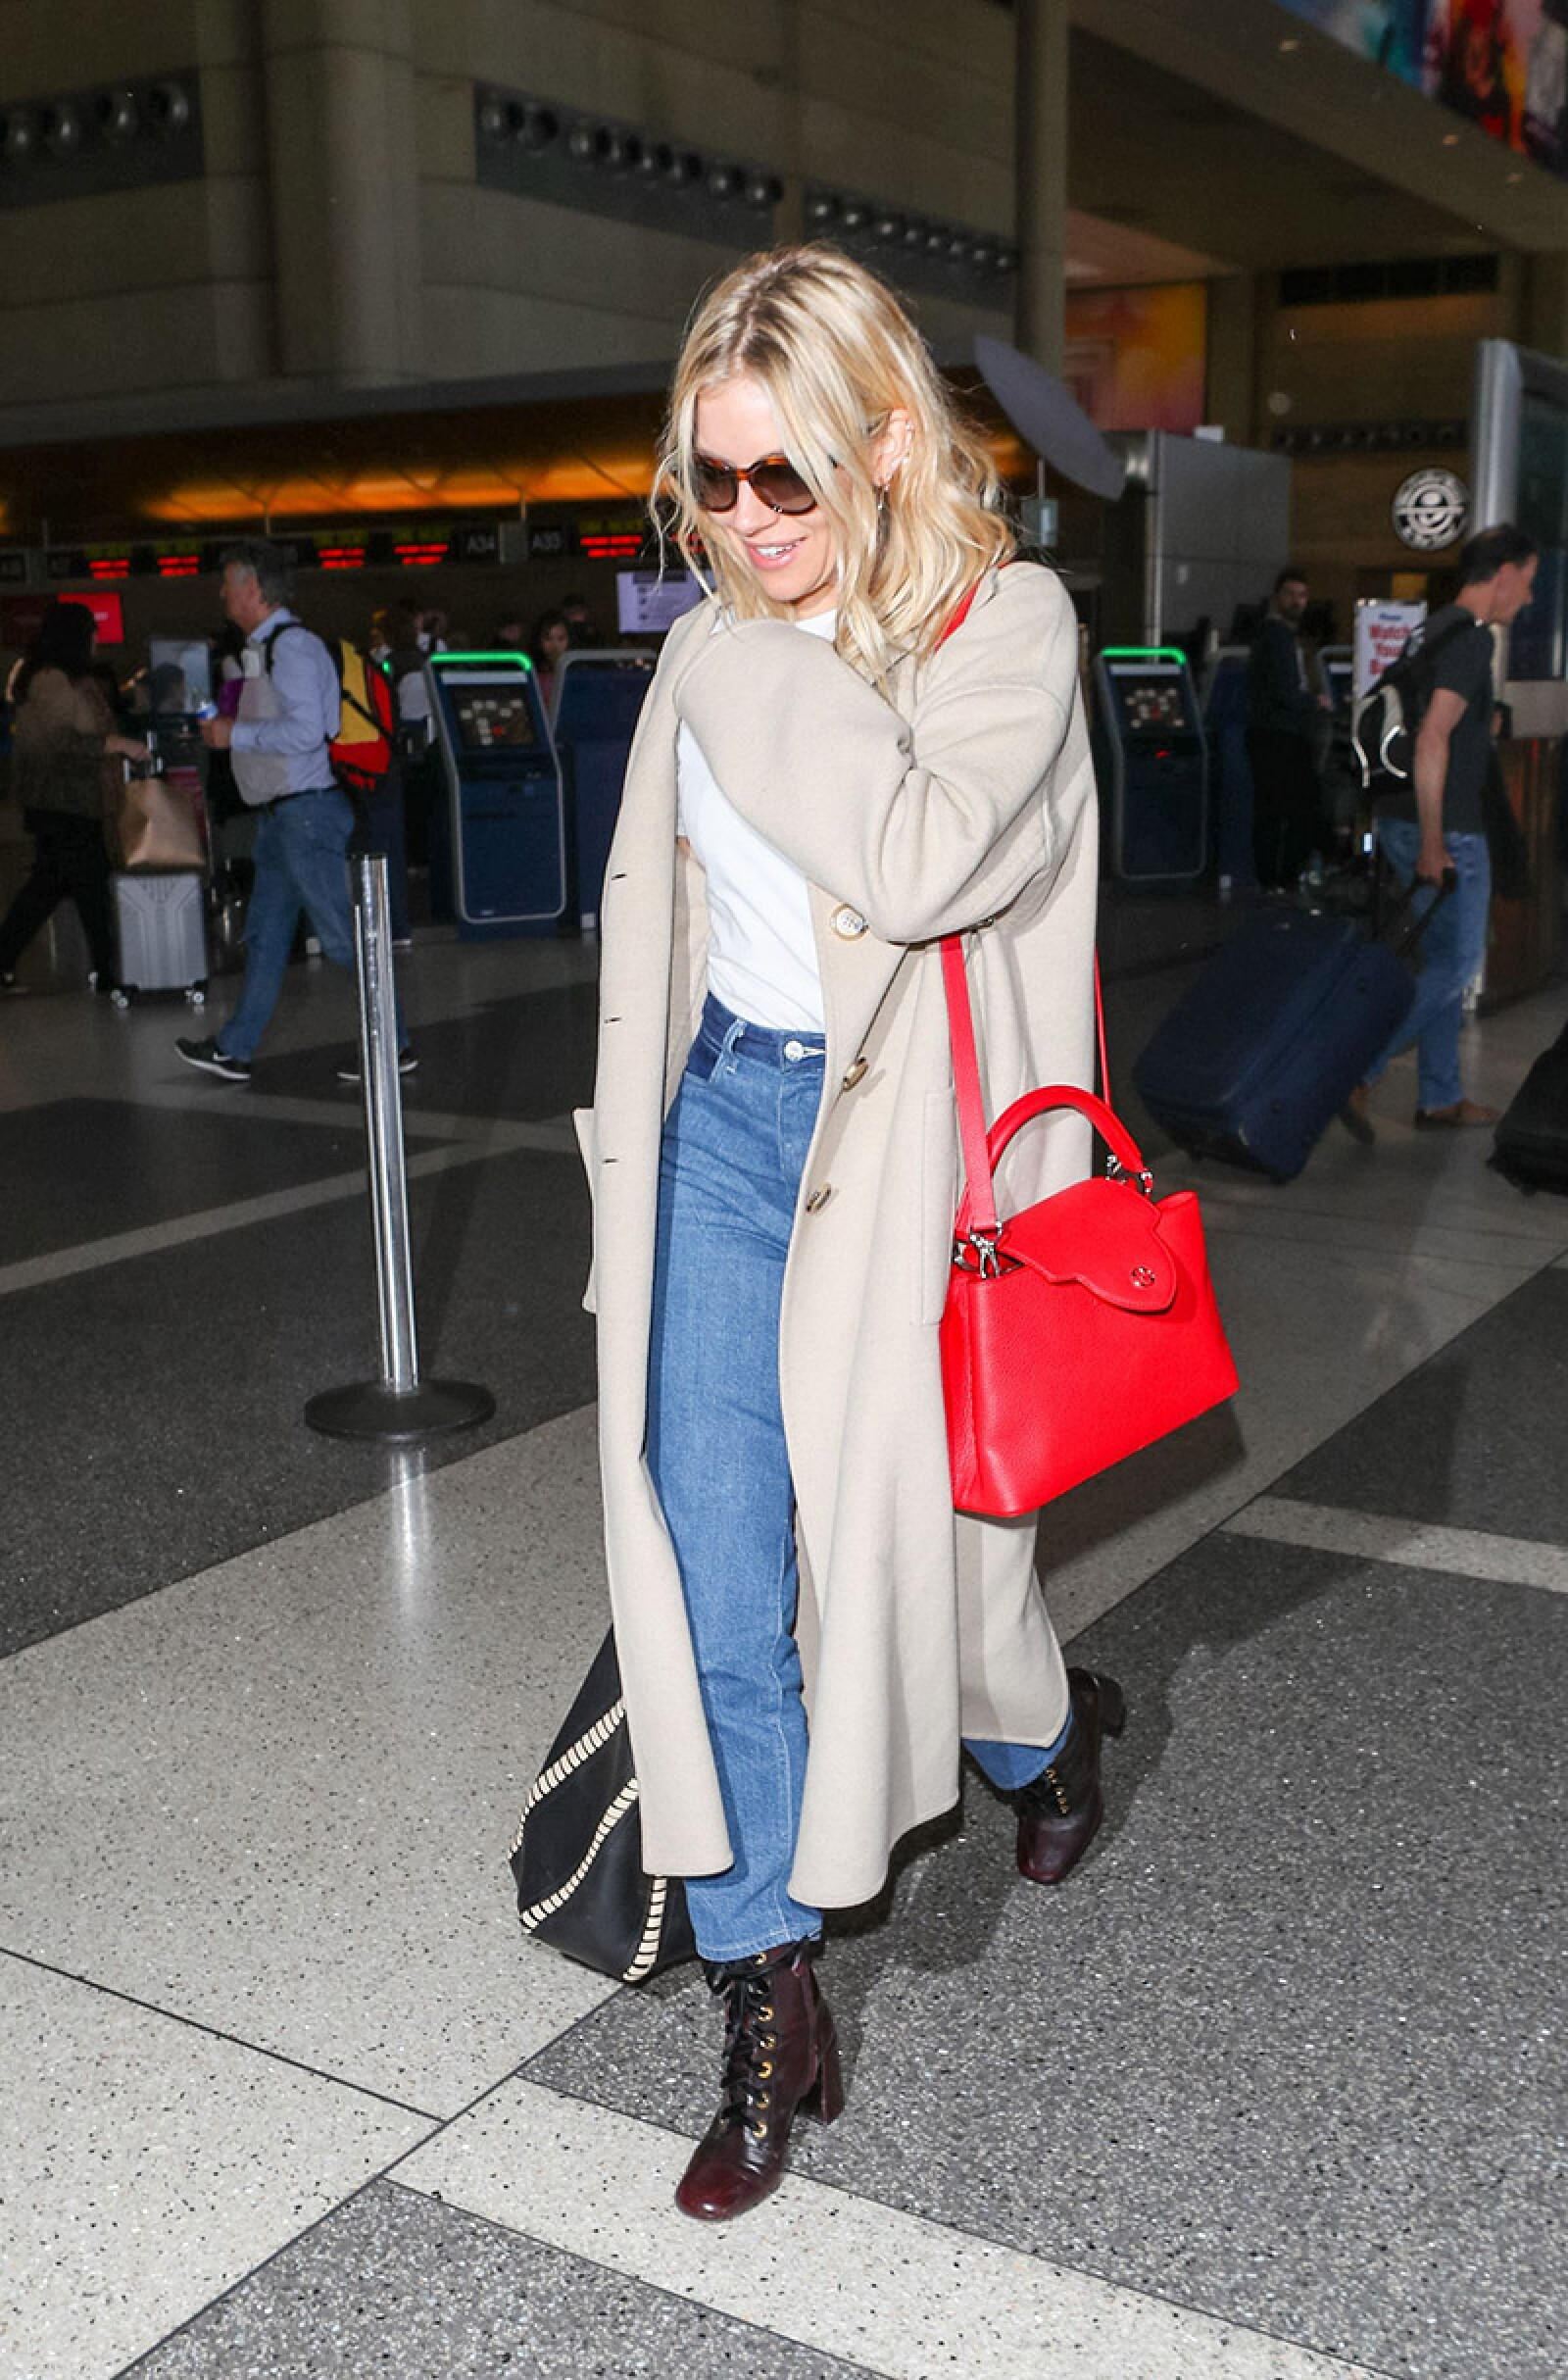 Sienna Miller at LAX International Airport, Los Angeles, USA - 05 Mar 2018